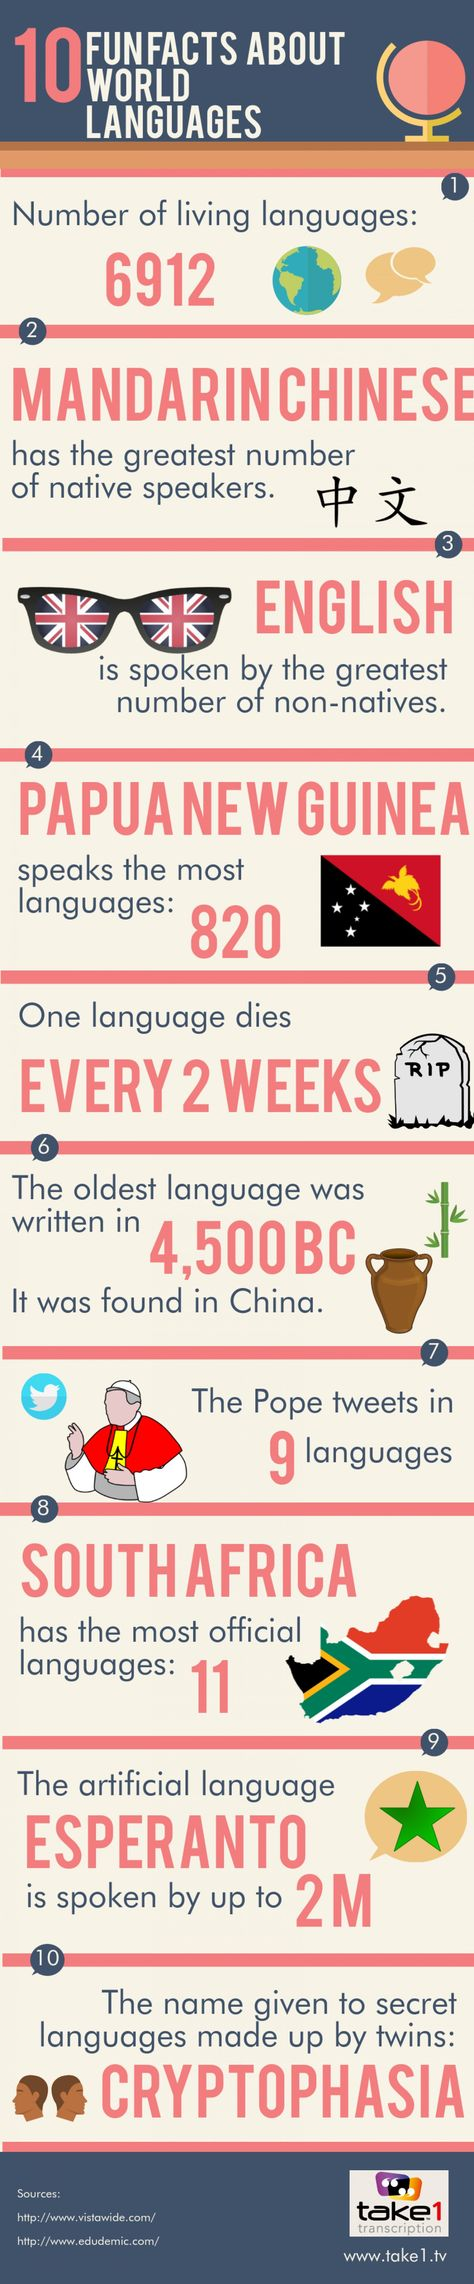 """Interesting, though I wouldn't call all of them """"fun"""": 10 Fun Facts About World Languages Infographic"""